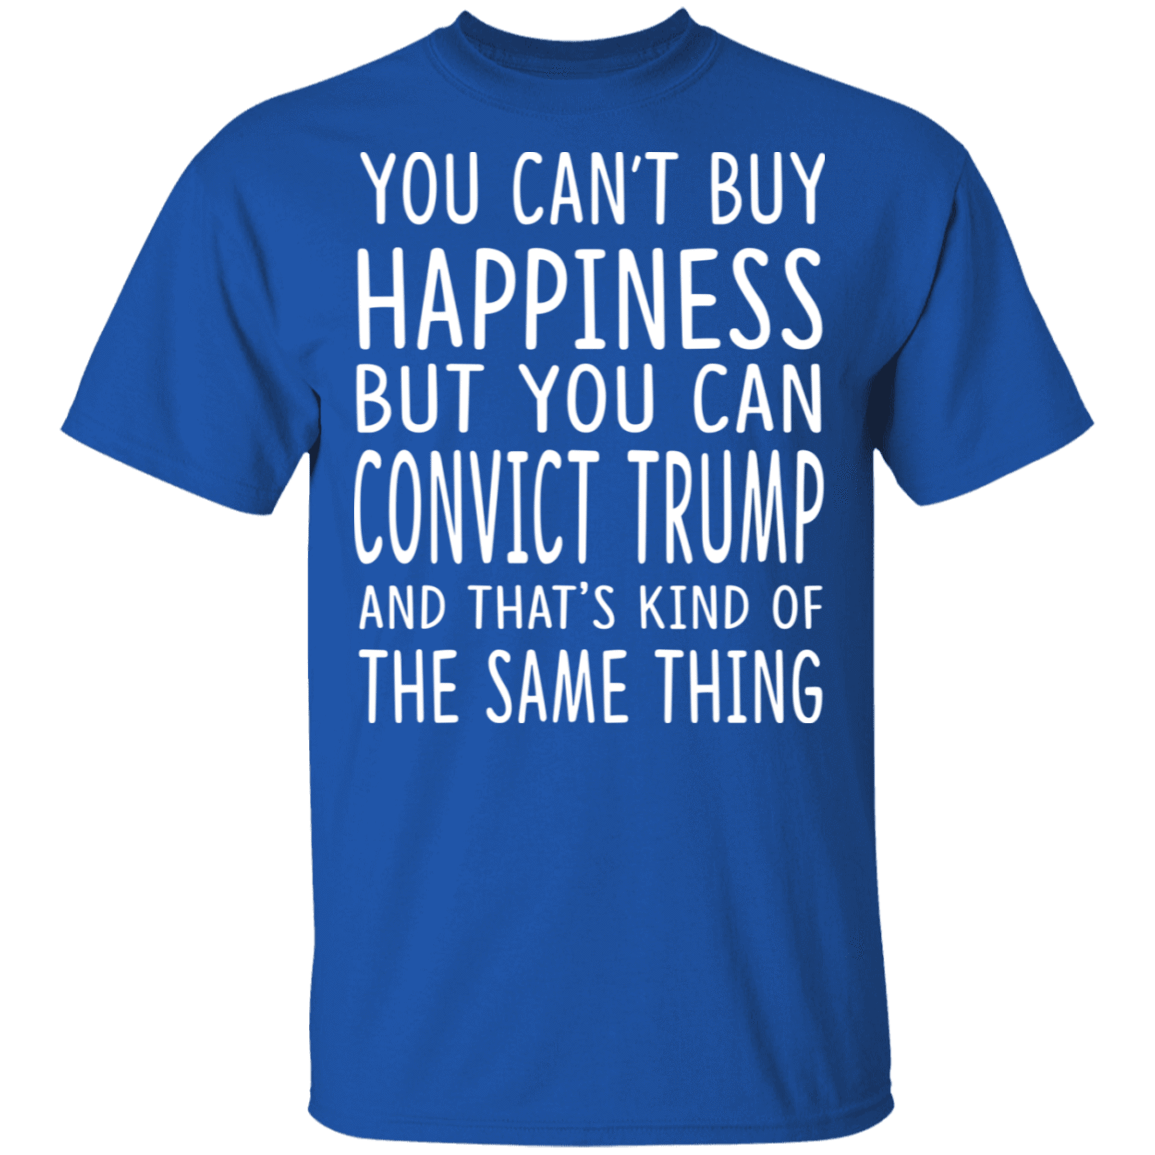 You Can Convict Trump And That's Kind of The Same Thing T-Shirts, Hoodies 22-110-80162935-249 - Tee Ript